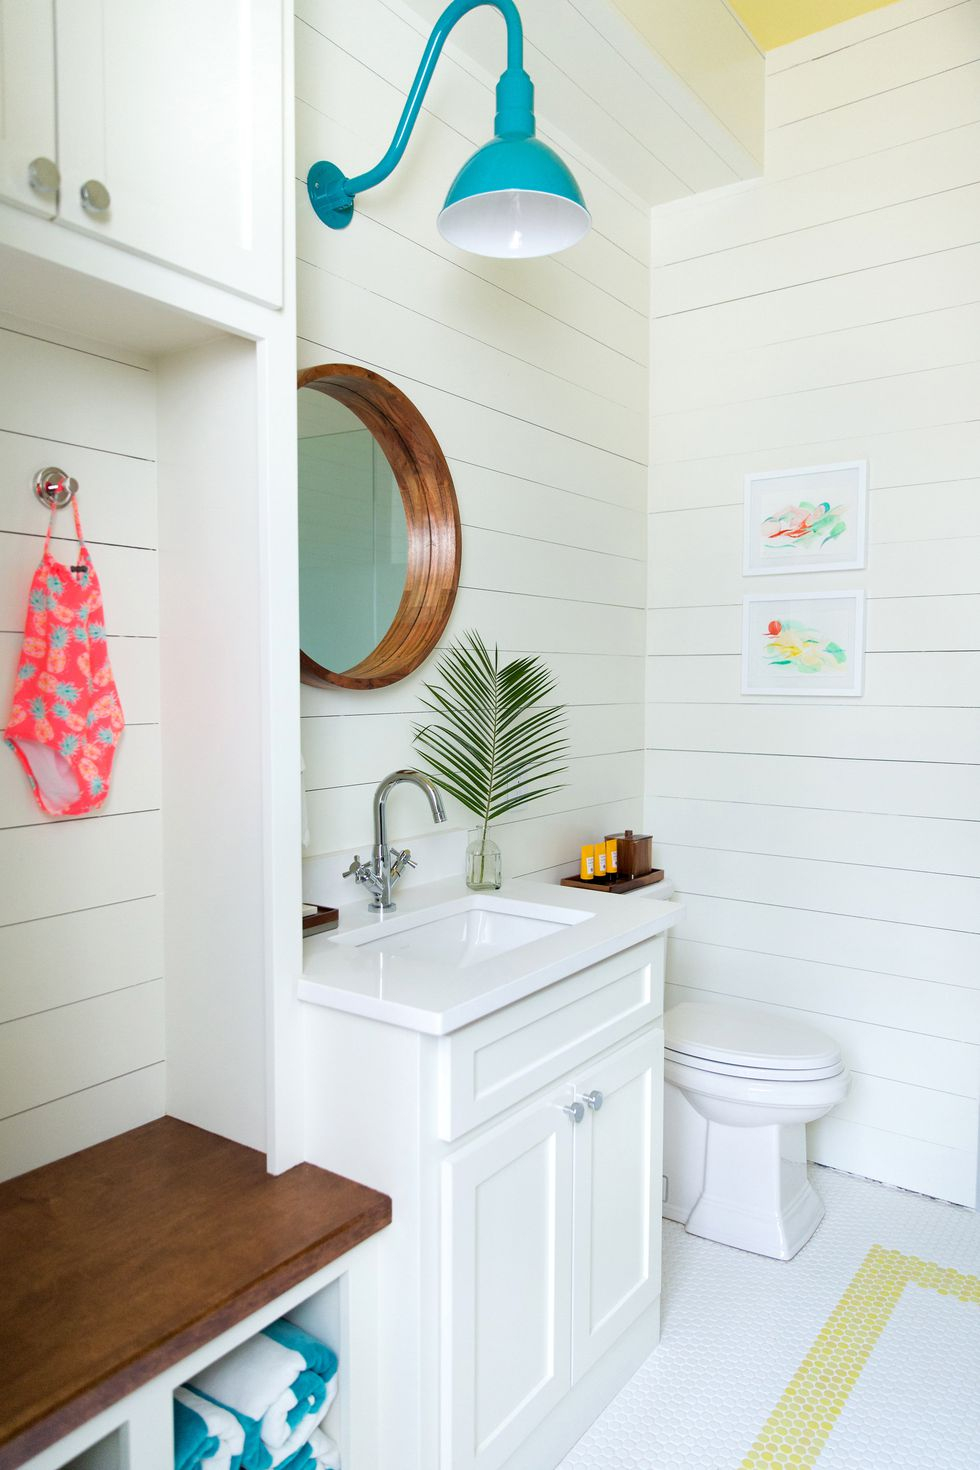 Pool house bathroom